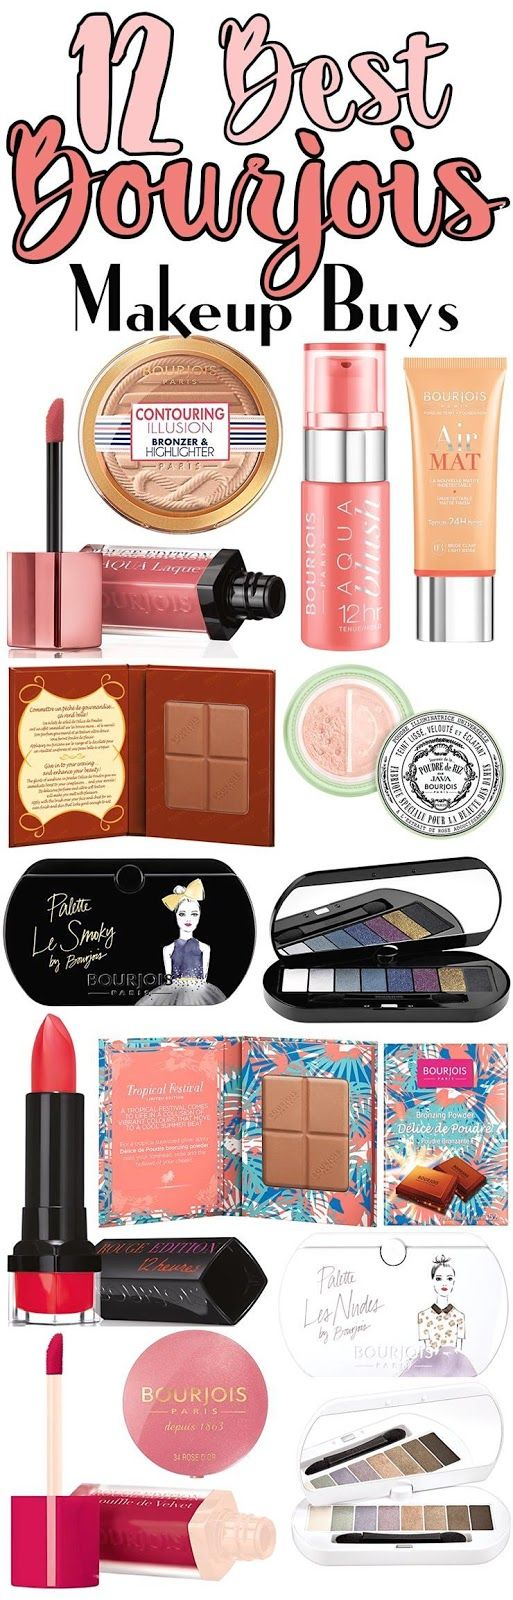 Holiday 2016 Gift Guide: Top 12 Makeup Buys From Bourjois